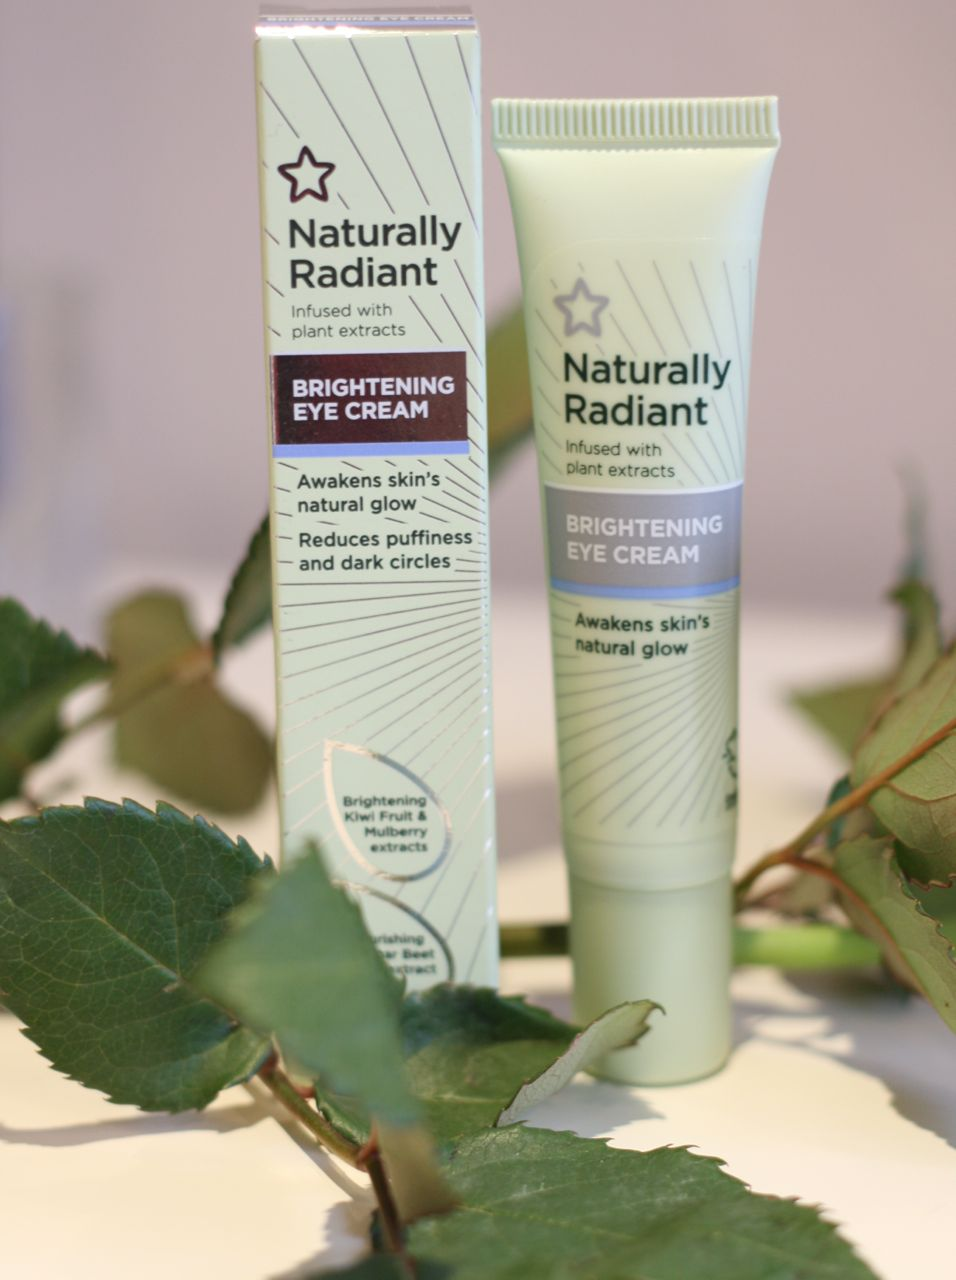 Superdrug Naturally Radiant Brightening Eye Cream Review So Many